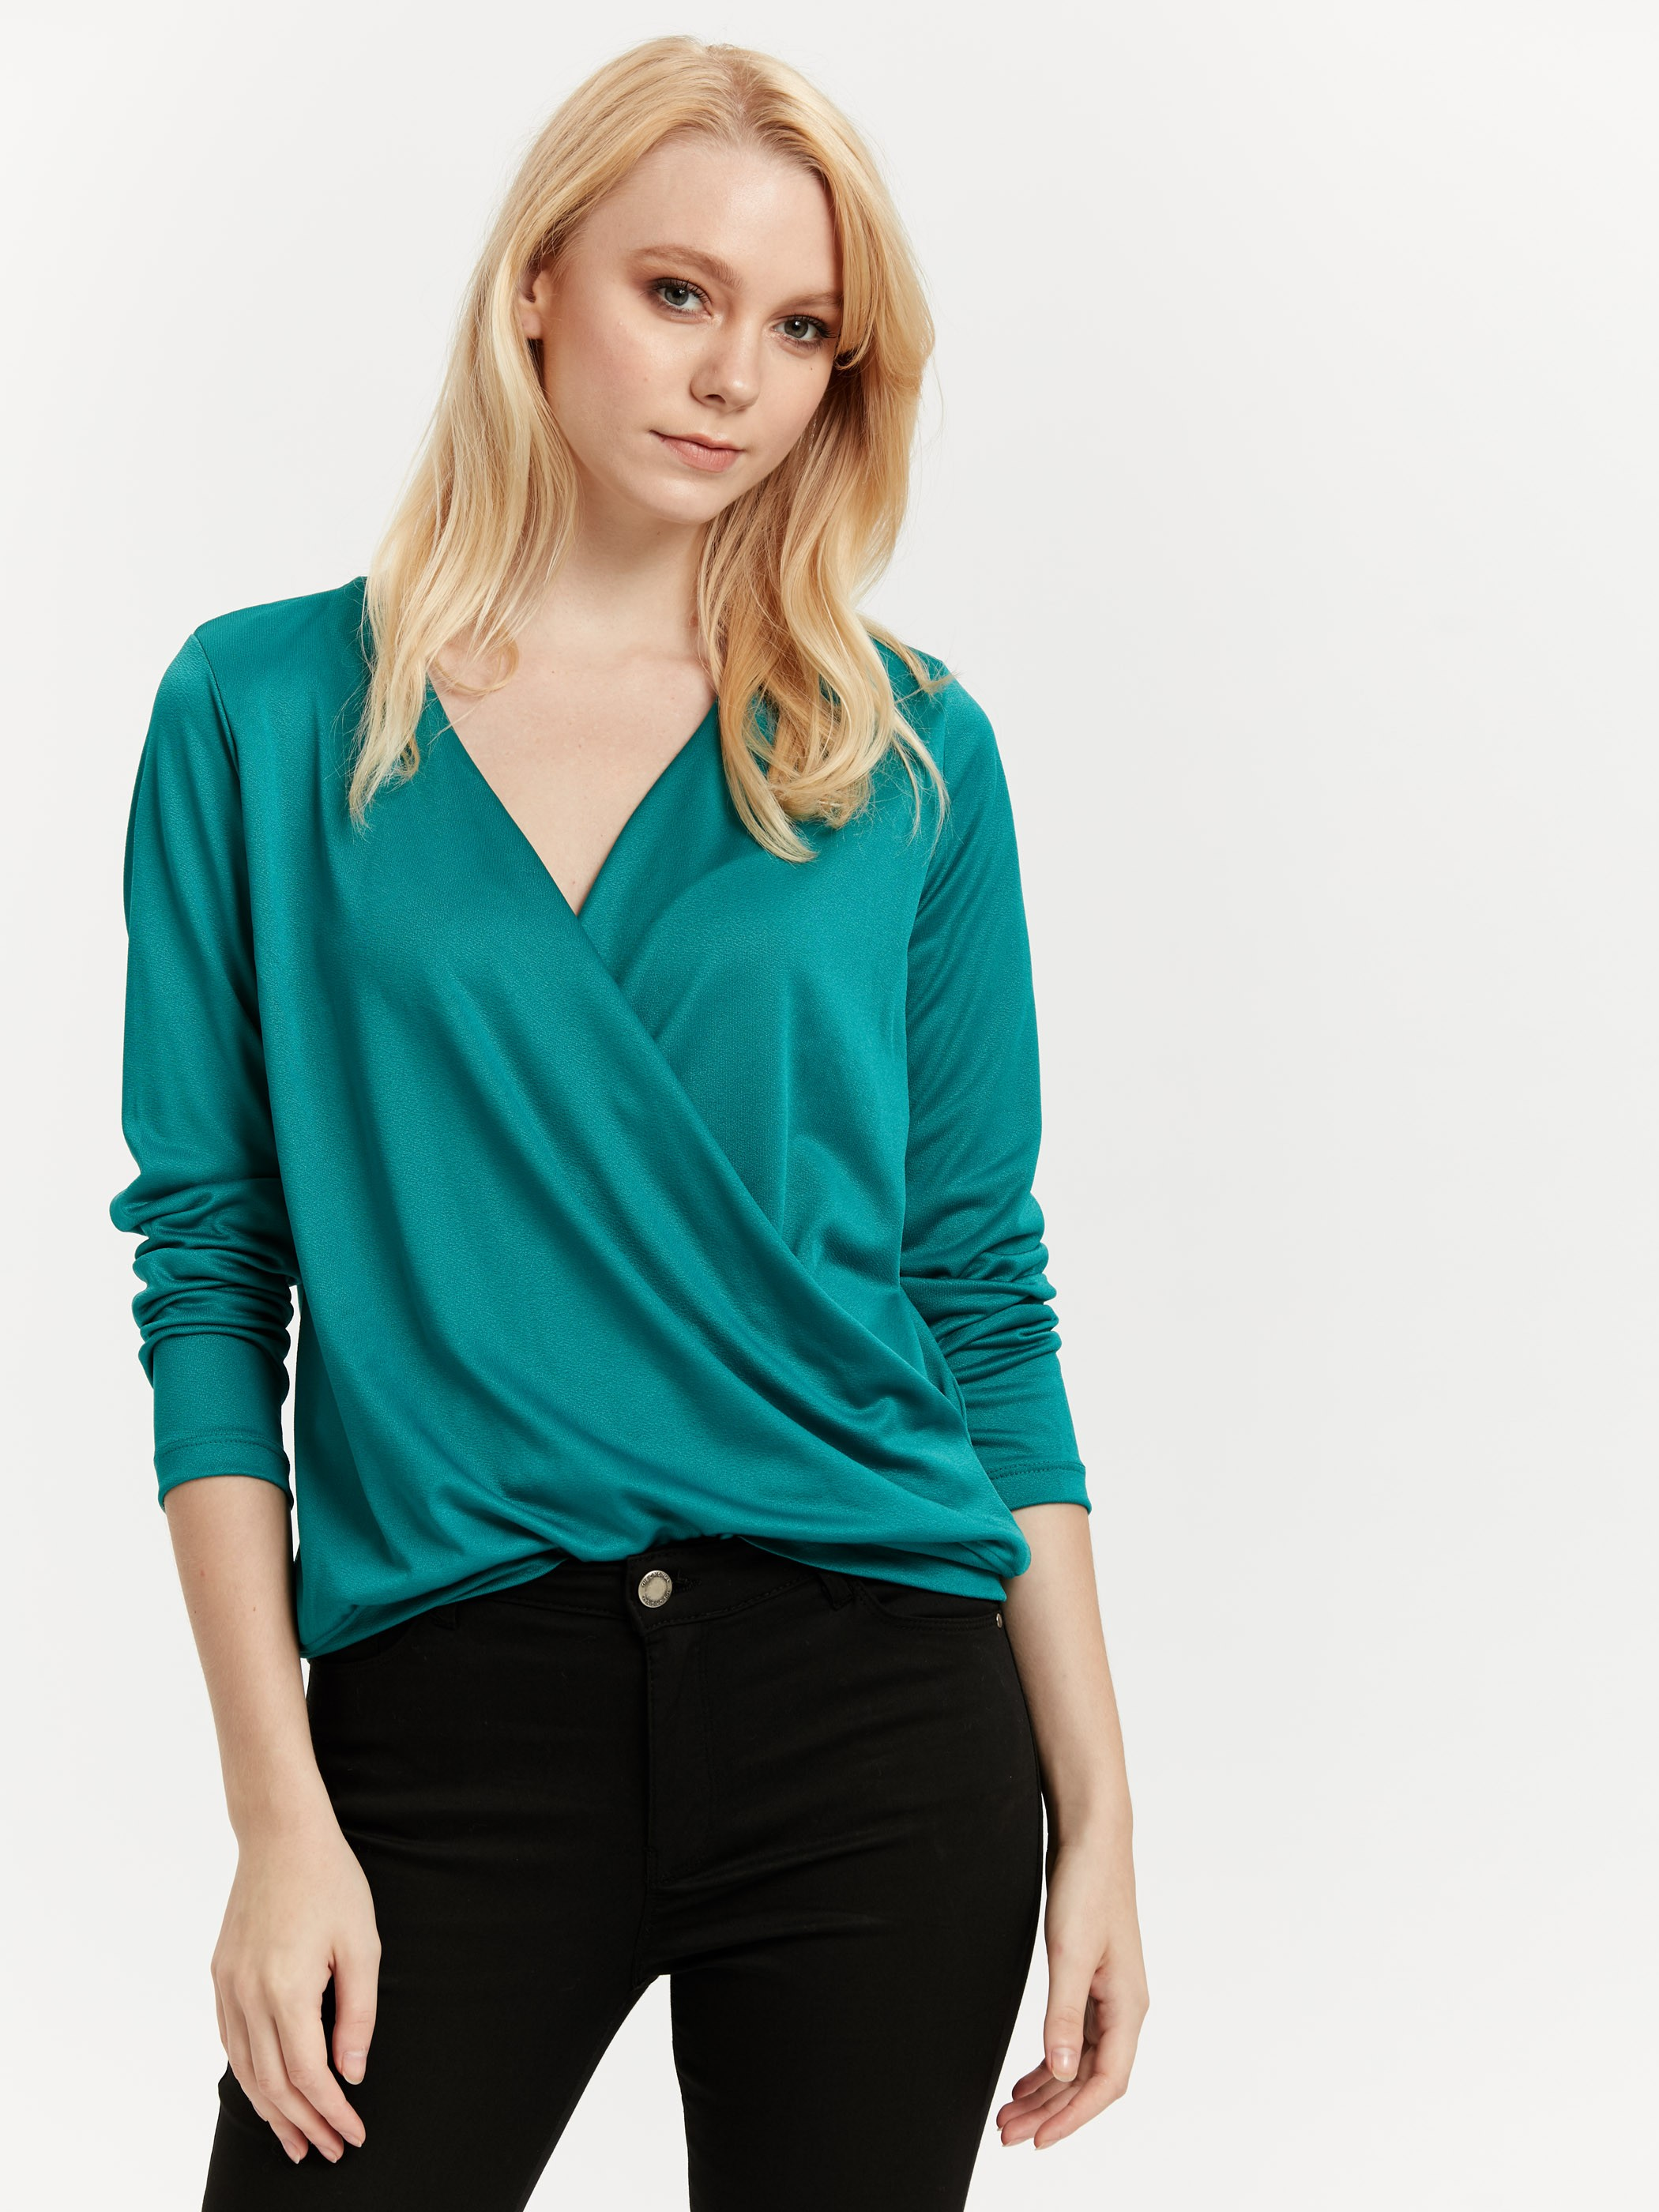 TURQUOISE - Double Breasted Collar Blouse - 8WI393Z8